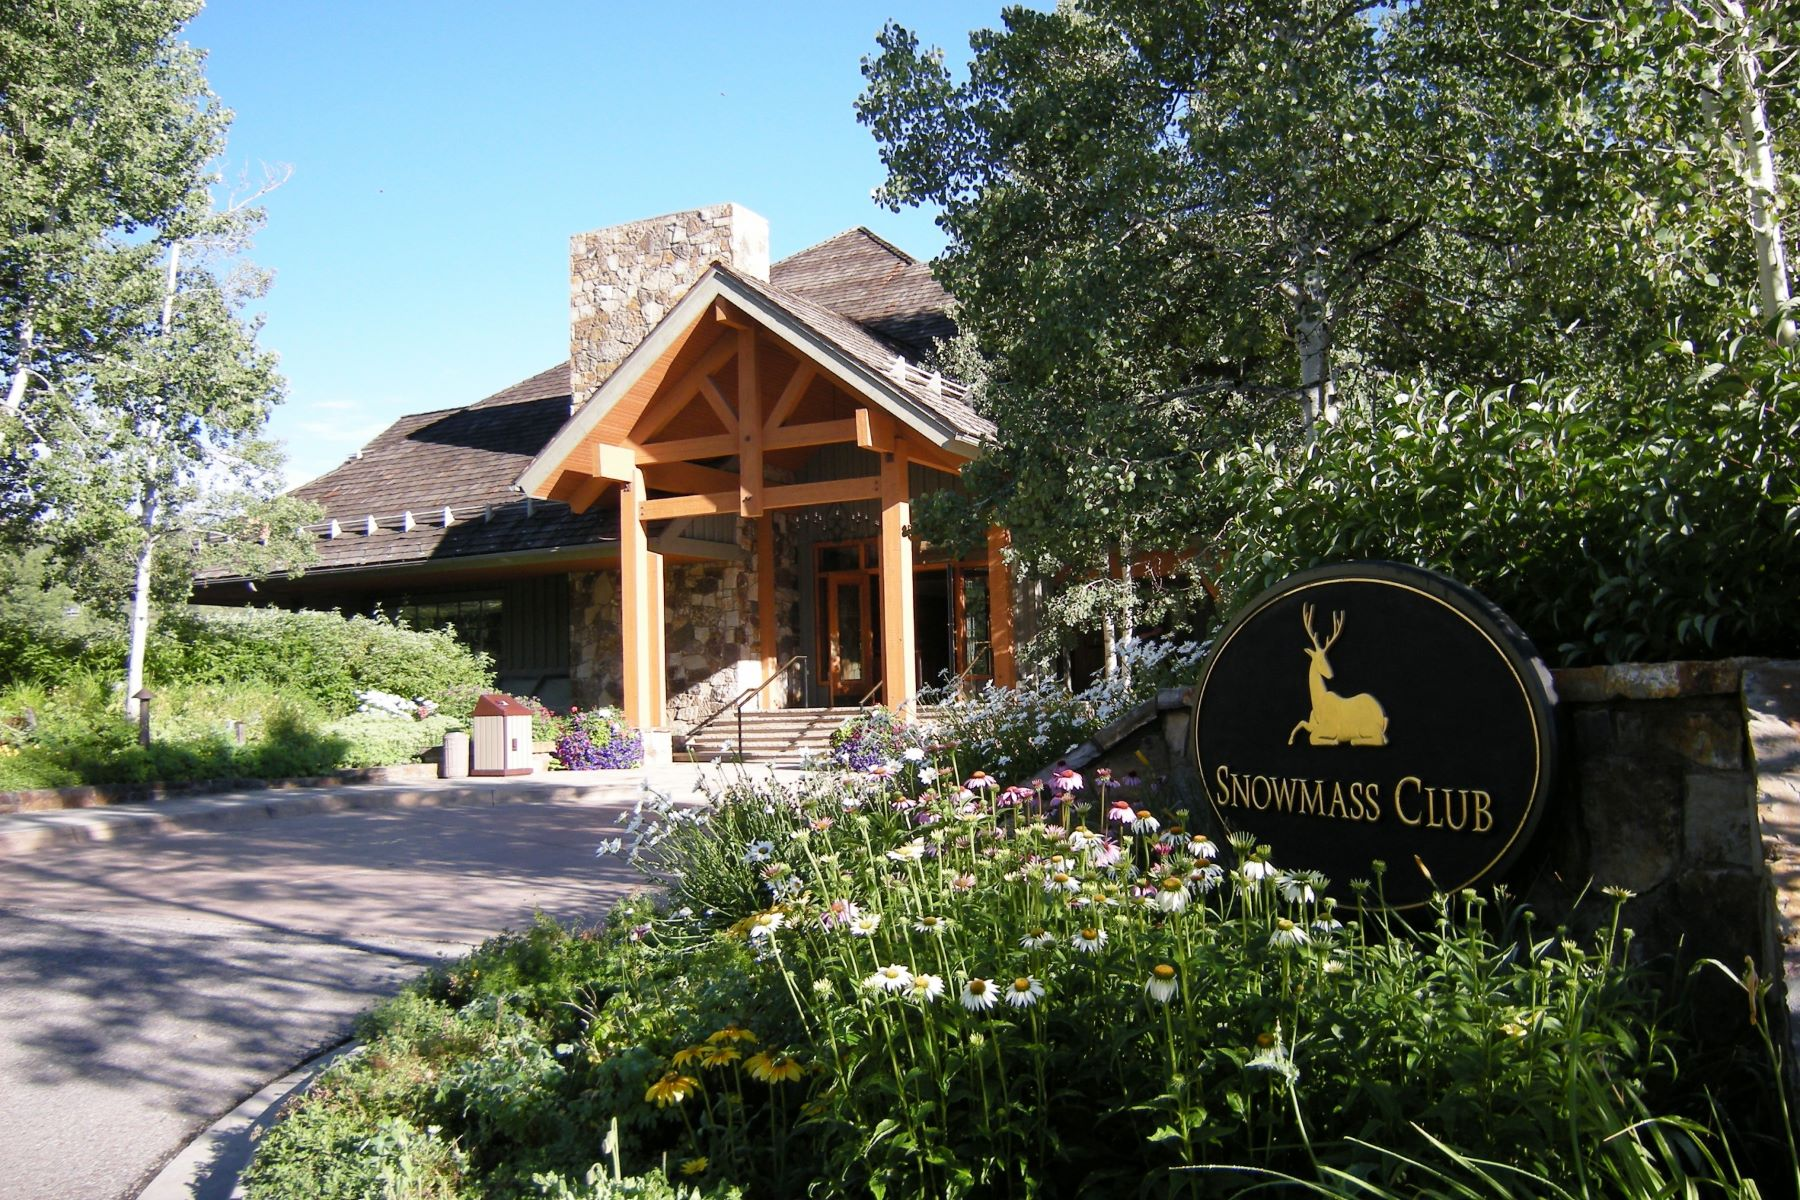 Fractional Ownership for Sale at Snowmass Private Residence Club, Unit 135 0239 Snowmass Club Circle, Unit 135 Interval Interest 2-95 Snowmass, Colorado, 81615 United States